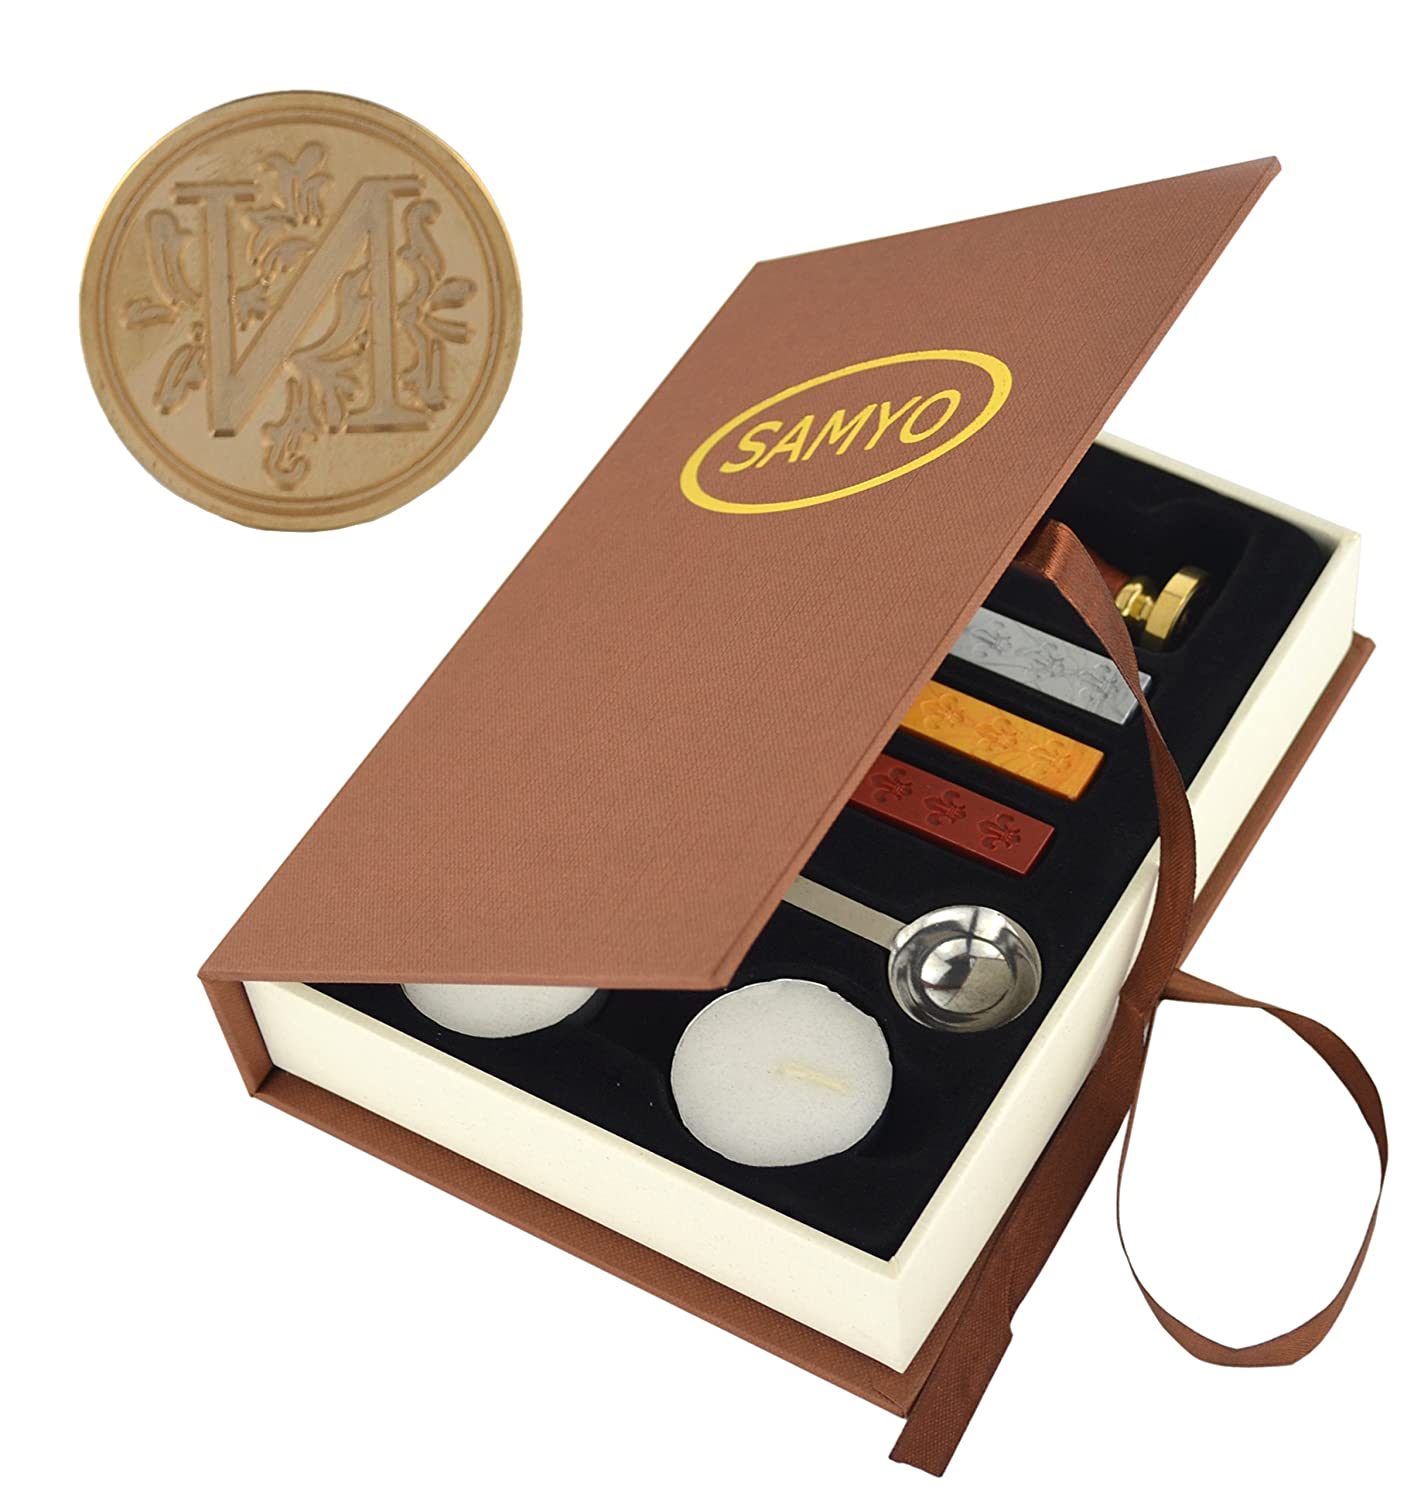 Samyo Stamp Seal Sealing Wax Vintage Classic Old-Fashioned Antique Alphabet Initial Letter Set Brass Color Creative Romantic Stamp Maker (P)